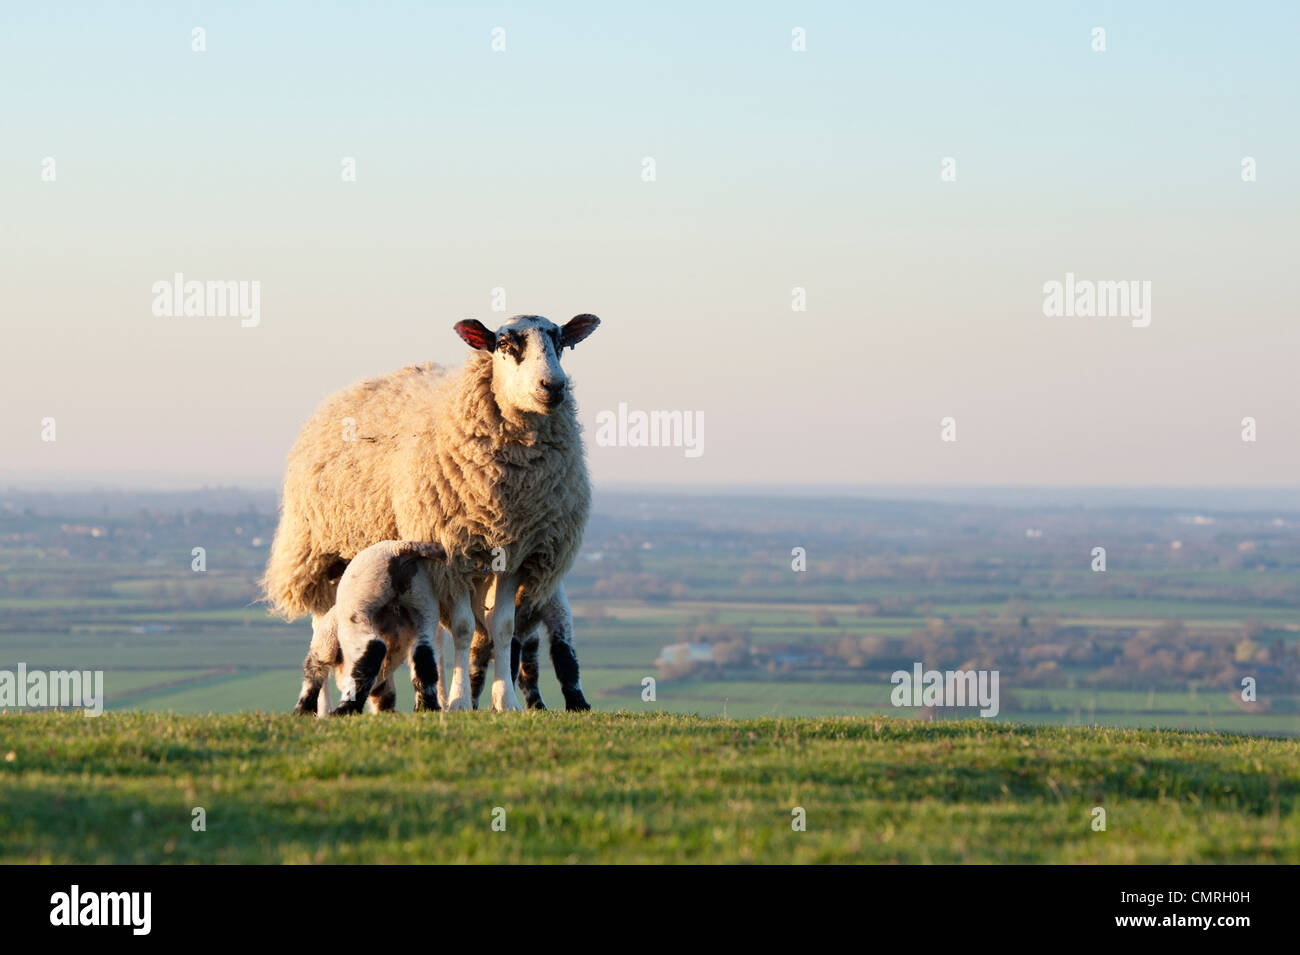 Lambs suckling from a ewe on a hillside in the english countryside. Oxfordshire, England - Stock Image